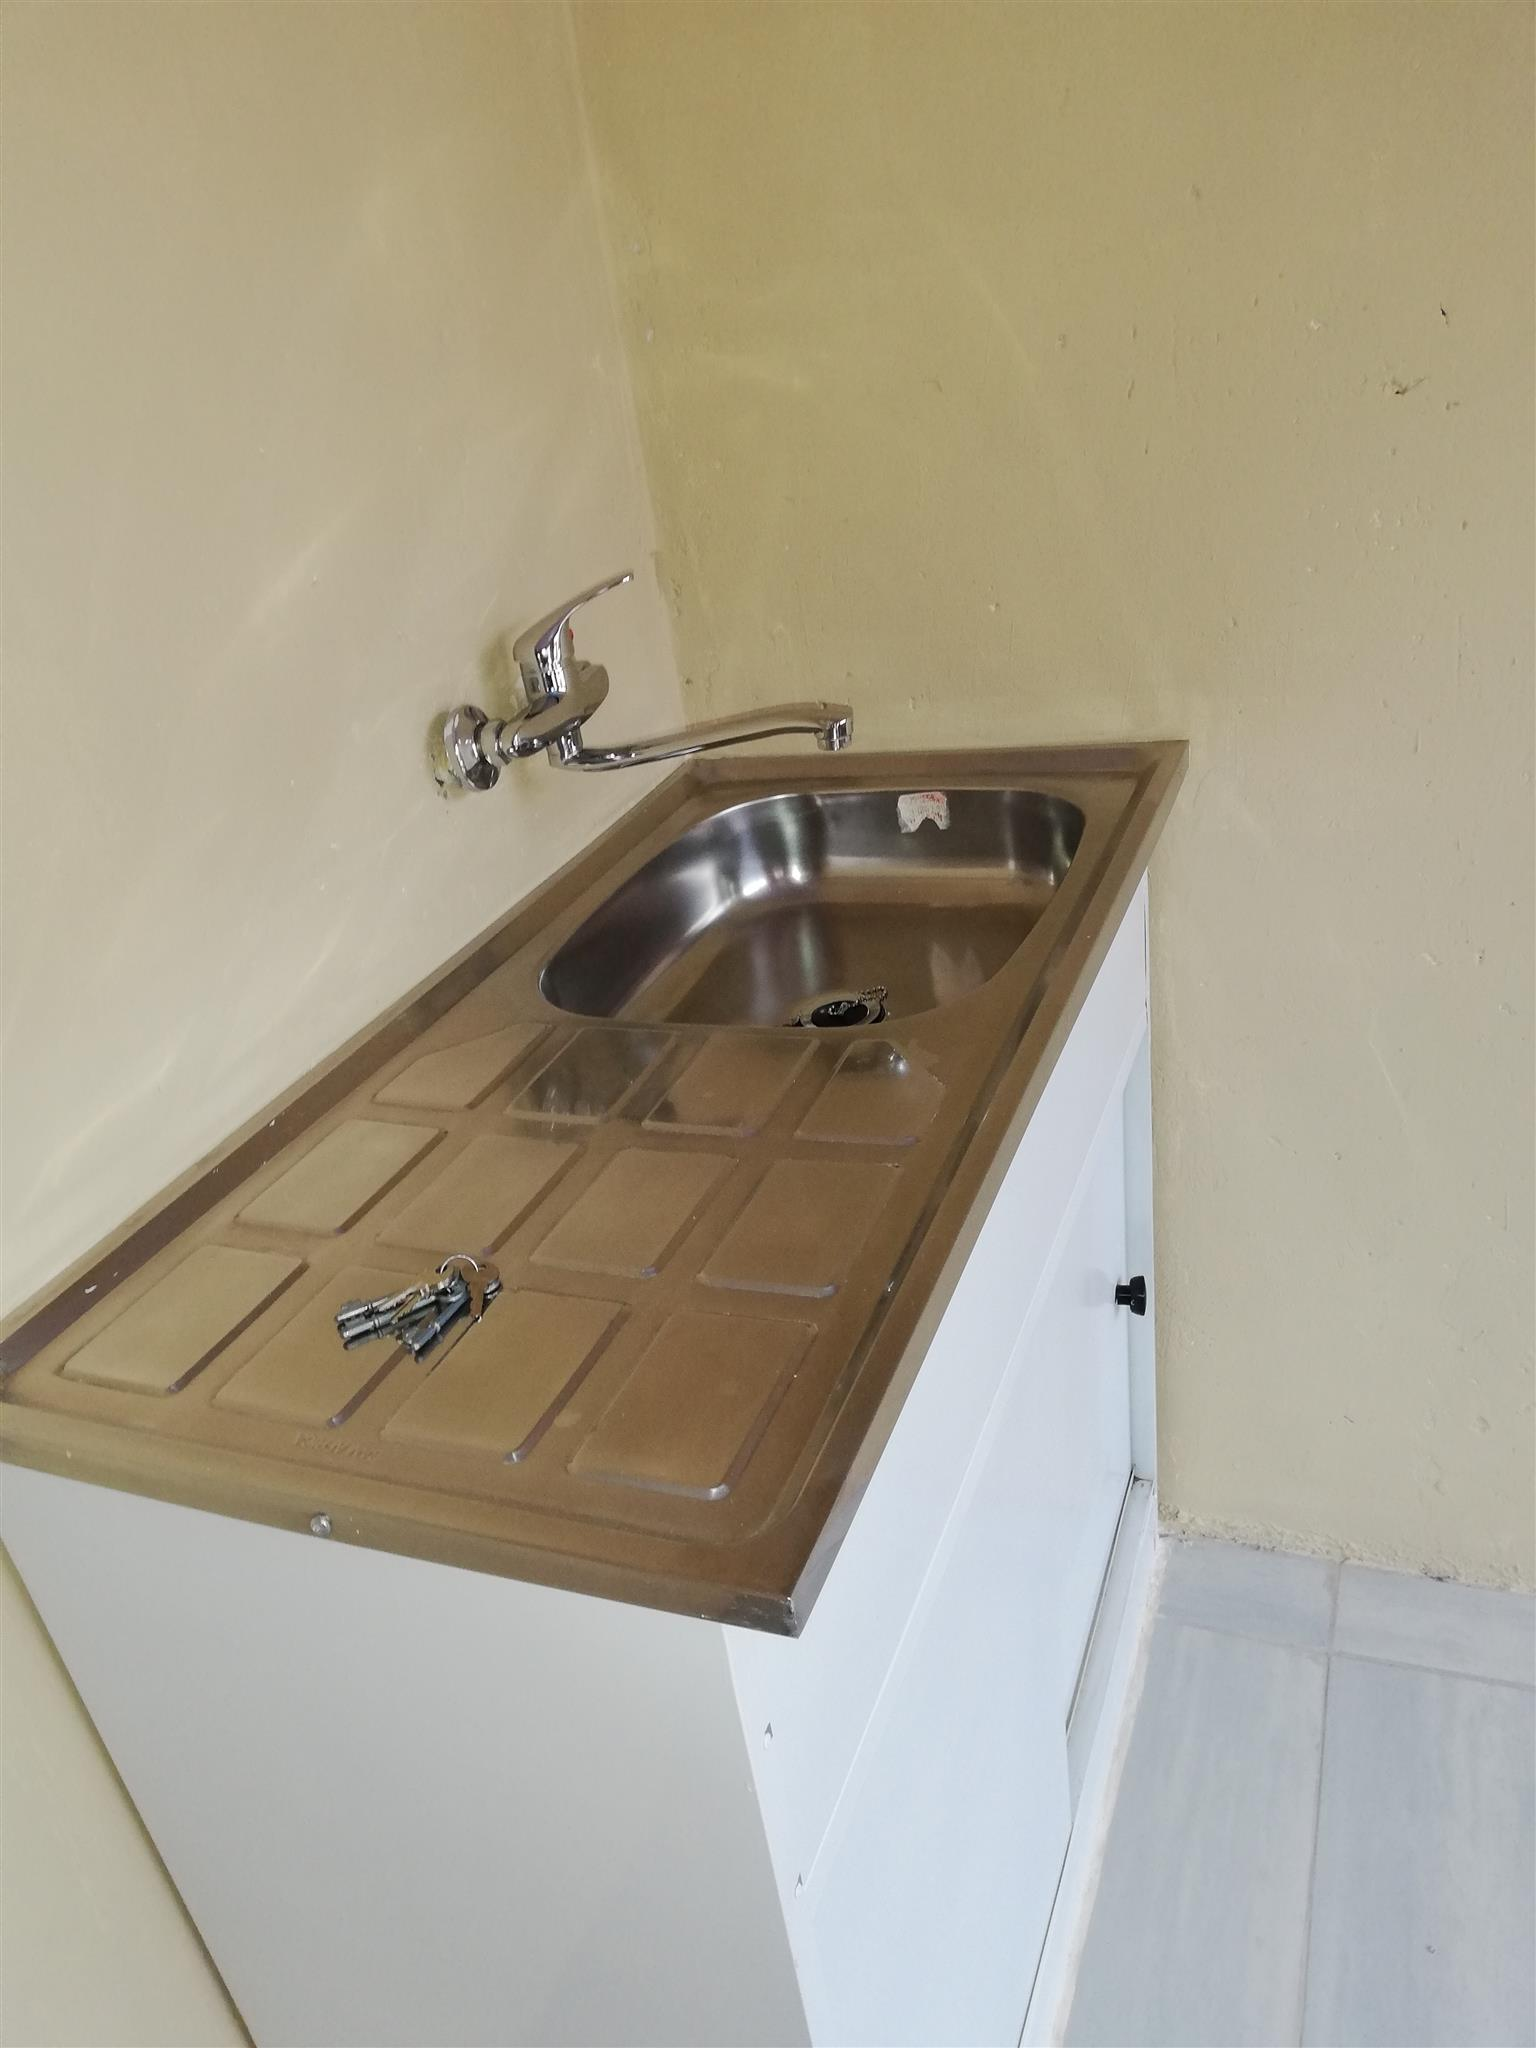 3 spacious rooms with showerbasintoilet and kitchen sink available to rent in